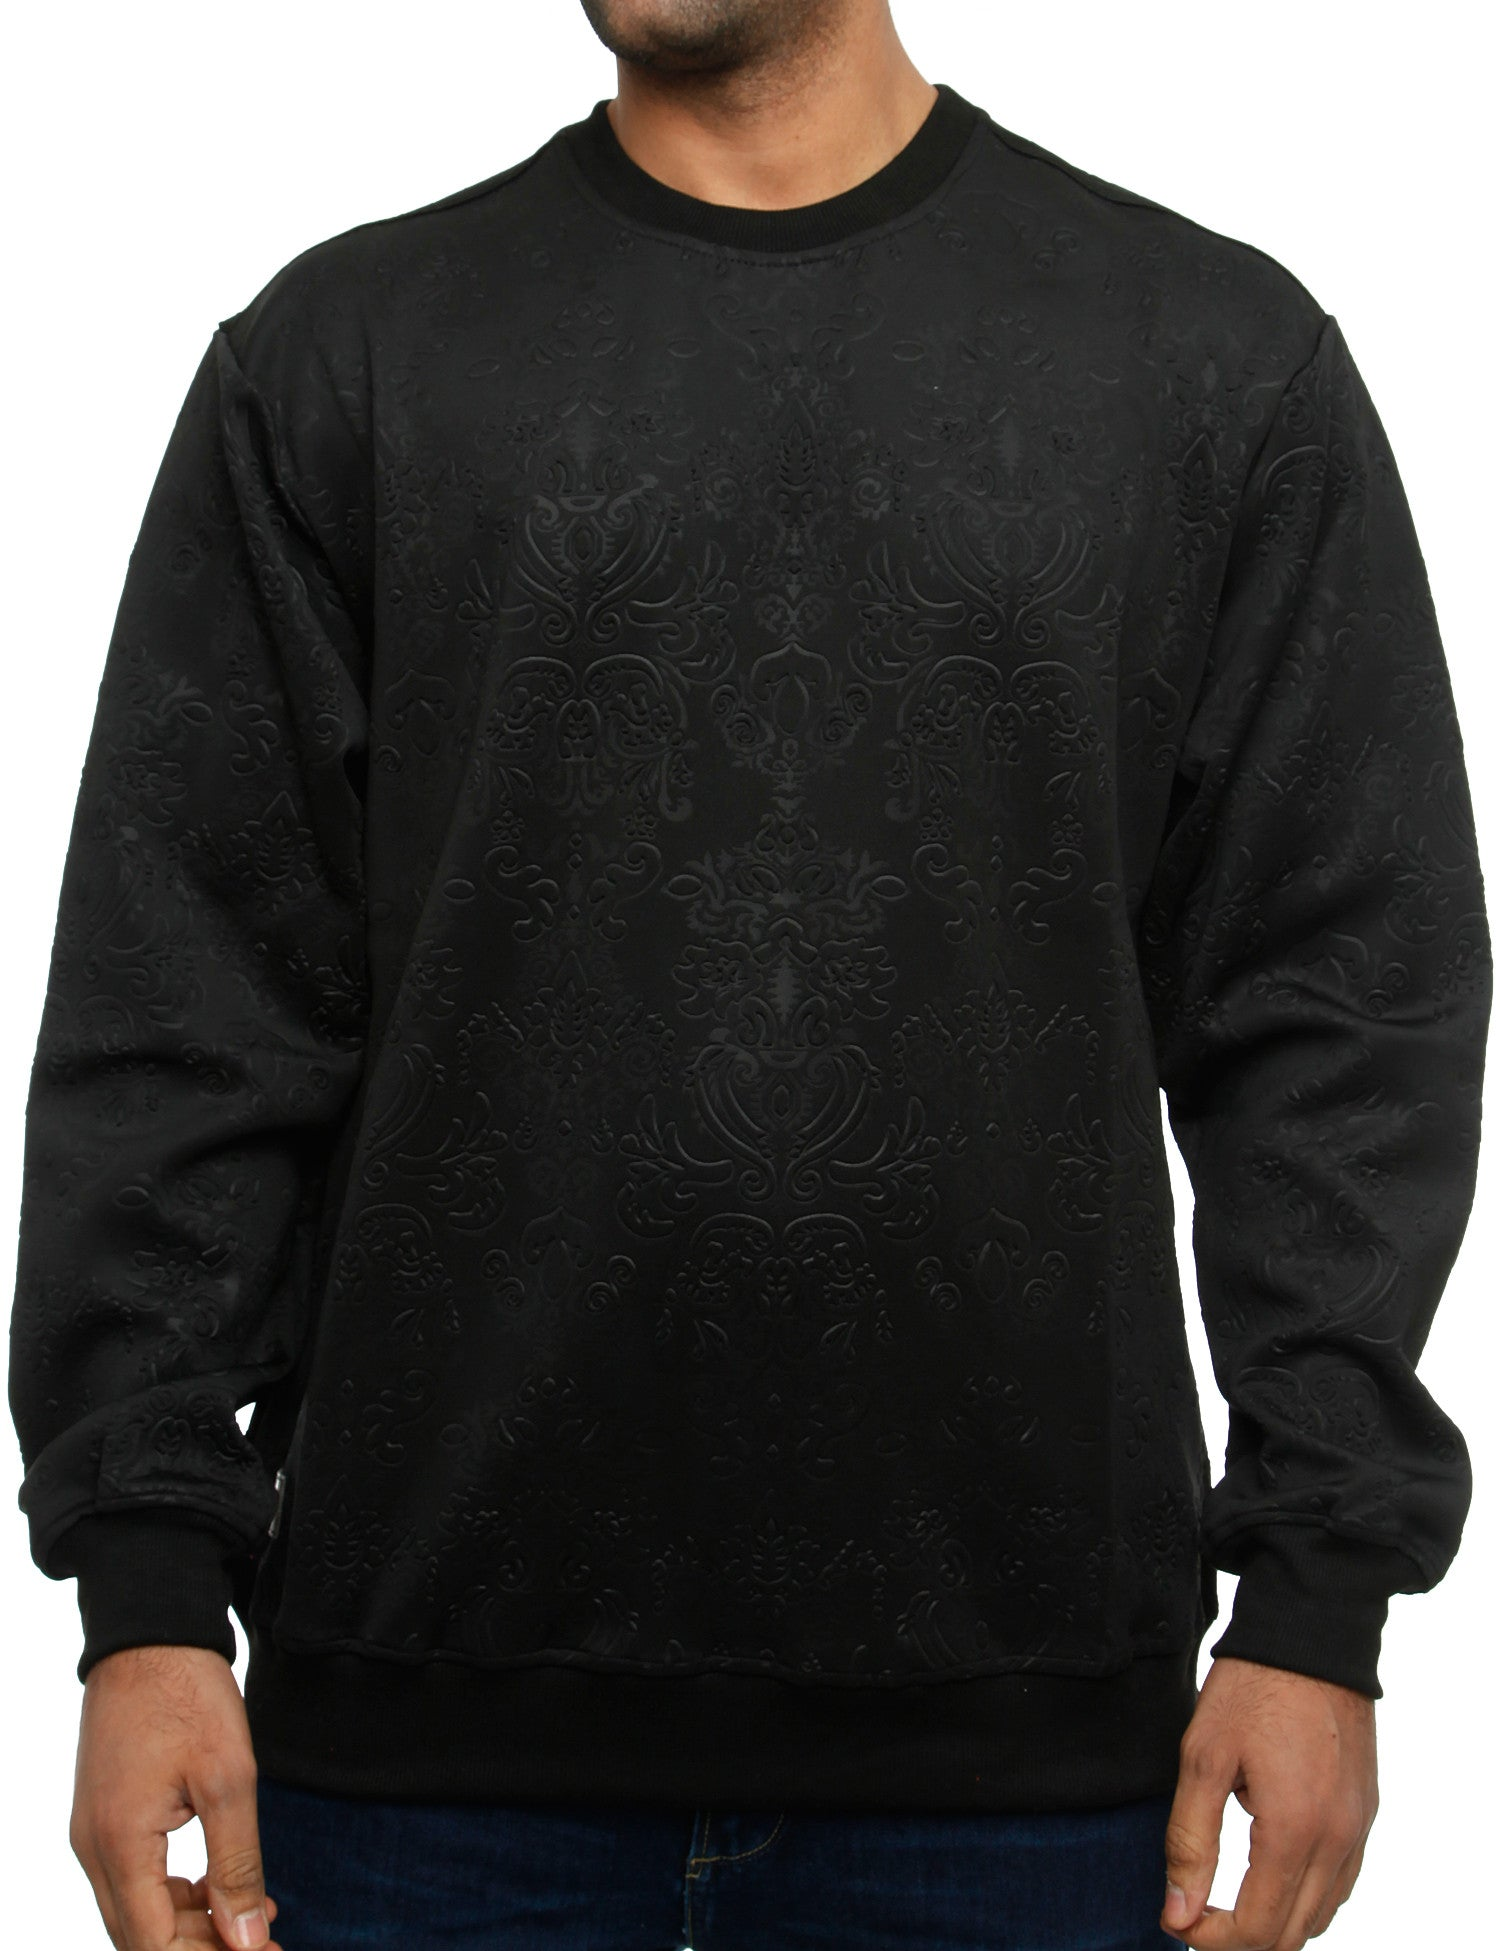 Imperious Sweatshirt CS578 Black